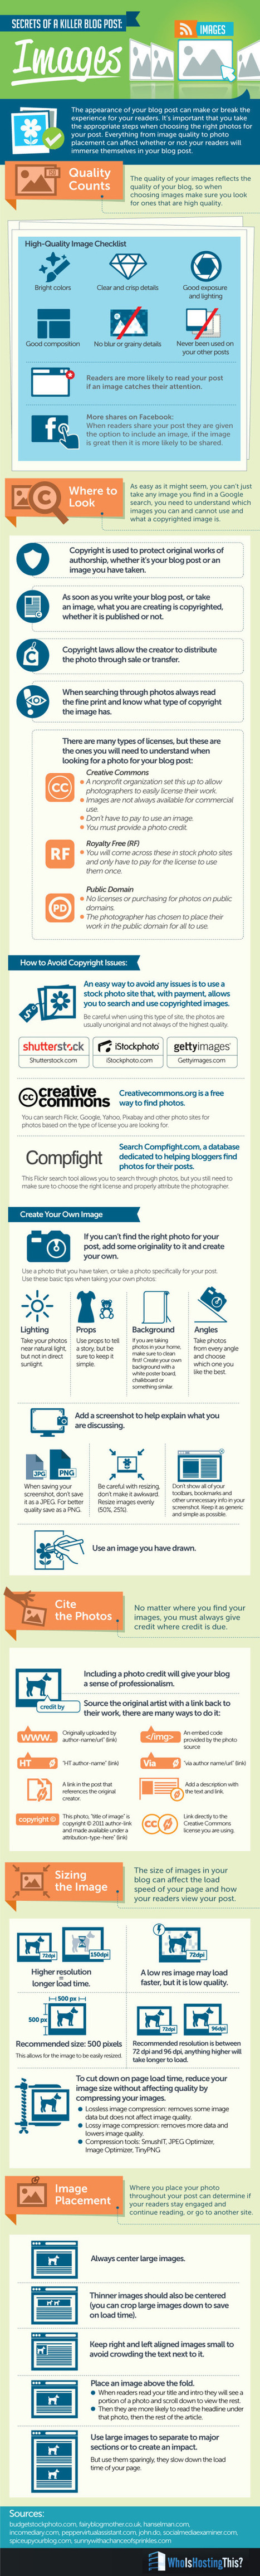 Secrets of a Killer Blog Post: Images [infographic] | digital marketing strategy | Scoop.it